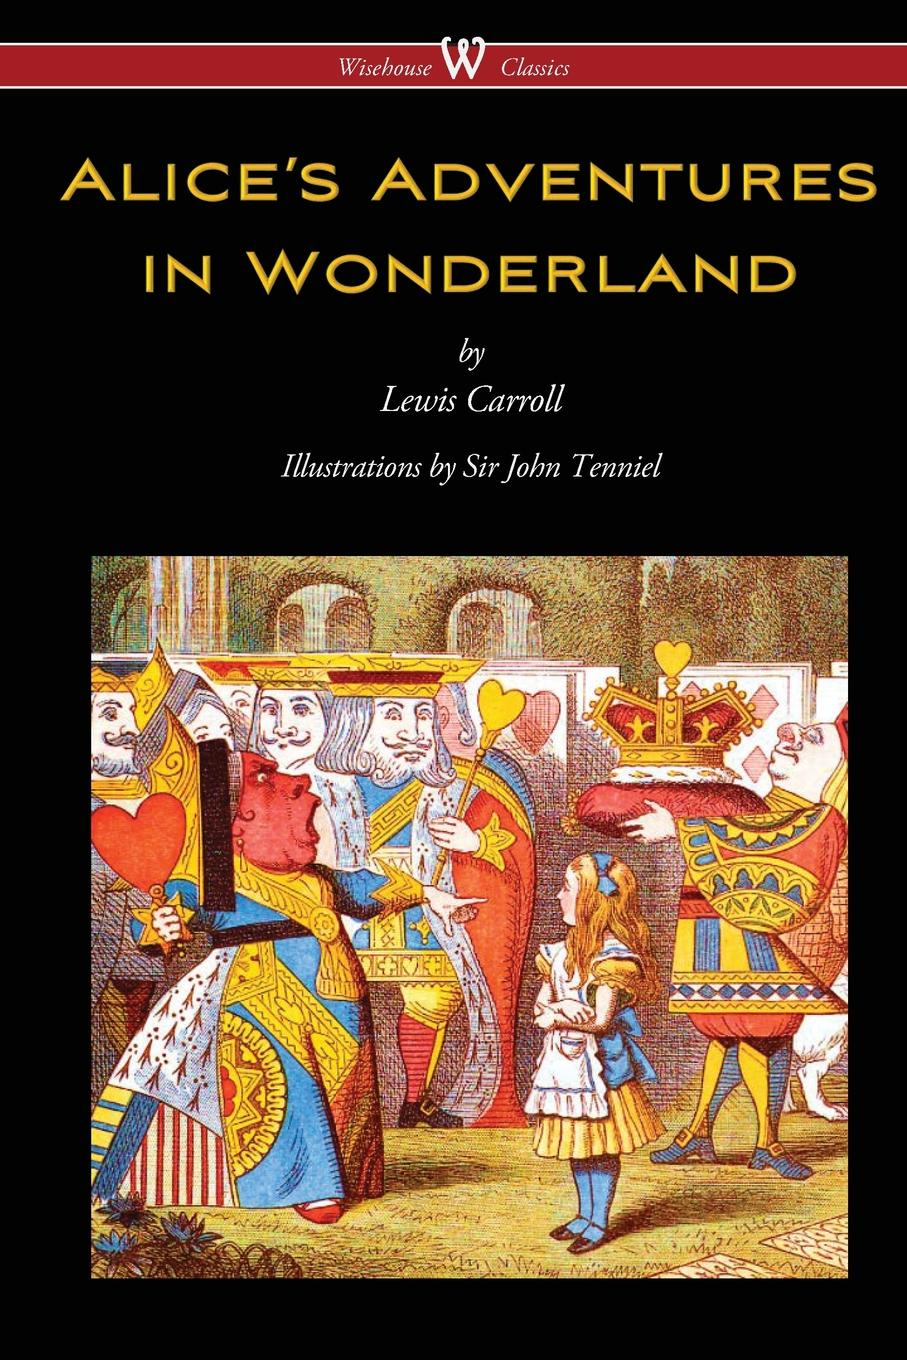 Lewis Carroll Alice.s Adventures in Wonderland (Wisehouse Classics - Original 1865 Edition with the Complete Illustrations by Sir John Tenniel) sandisk ultra type c 16gb black silver usb накопитель